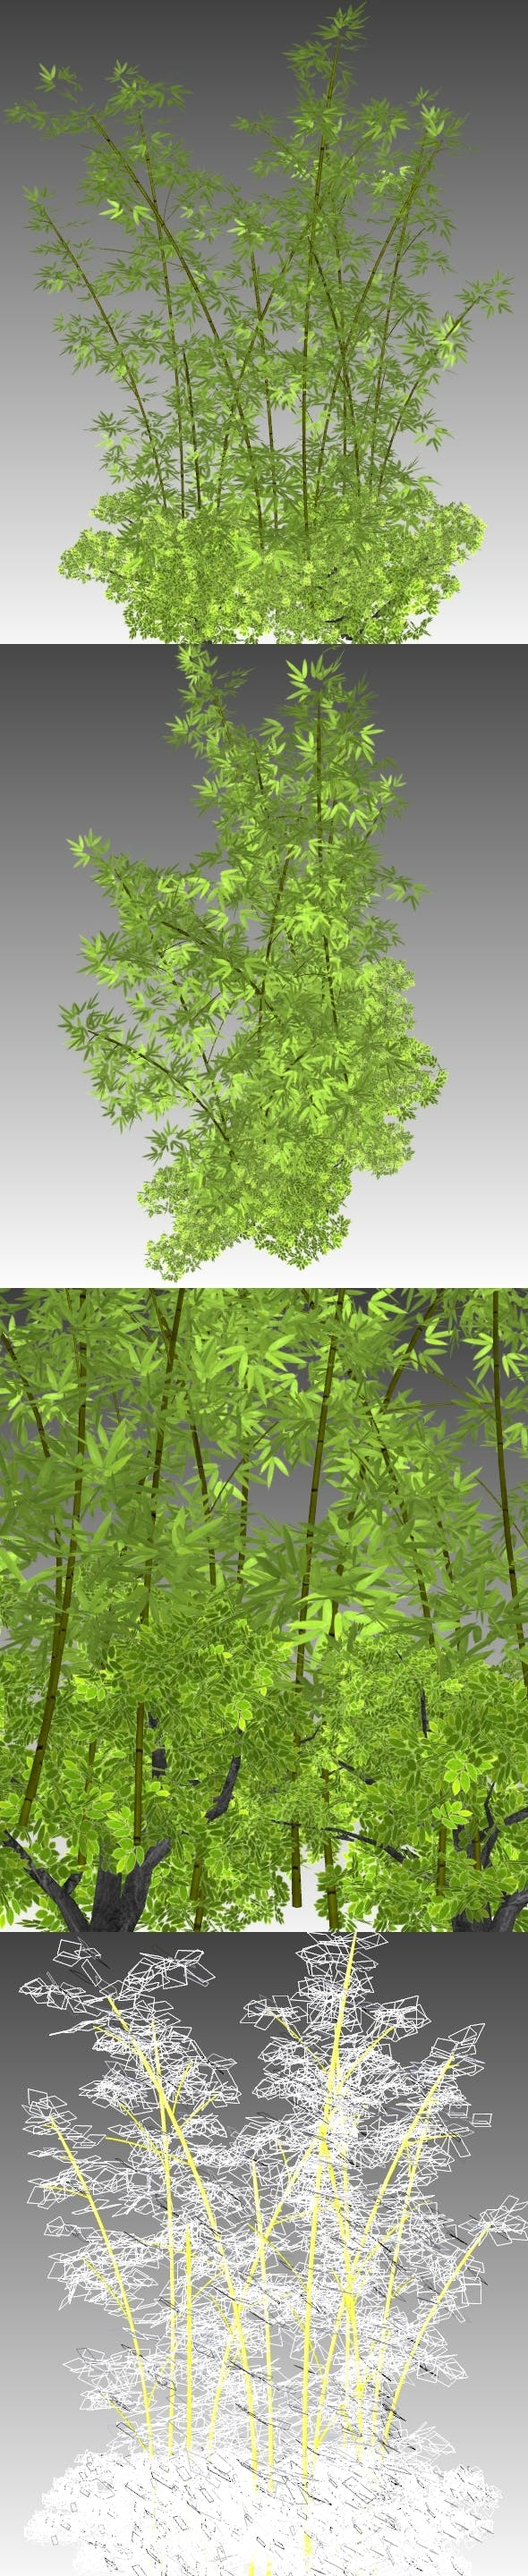 Low Poly Tree 3 - 3DOcean Item for Sale